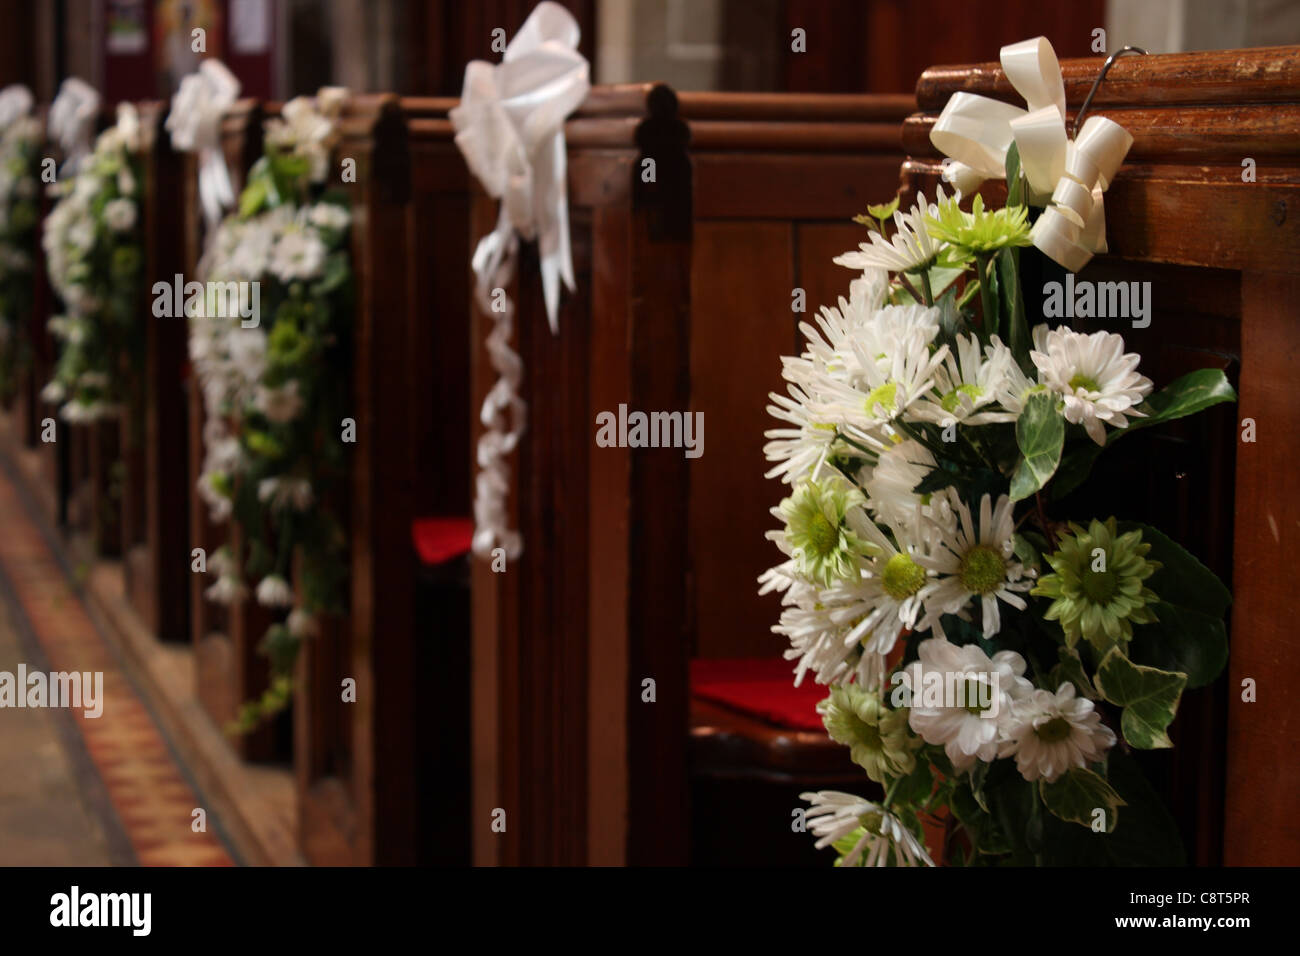 church pews with wedding floral arrangements of flowers in